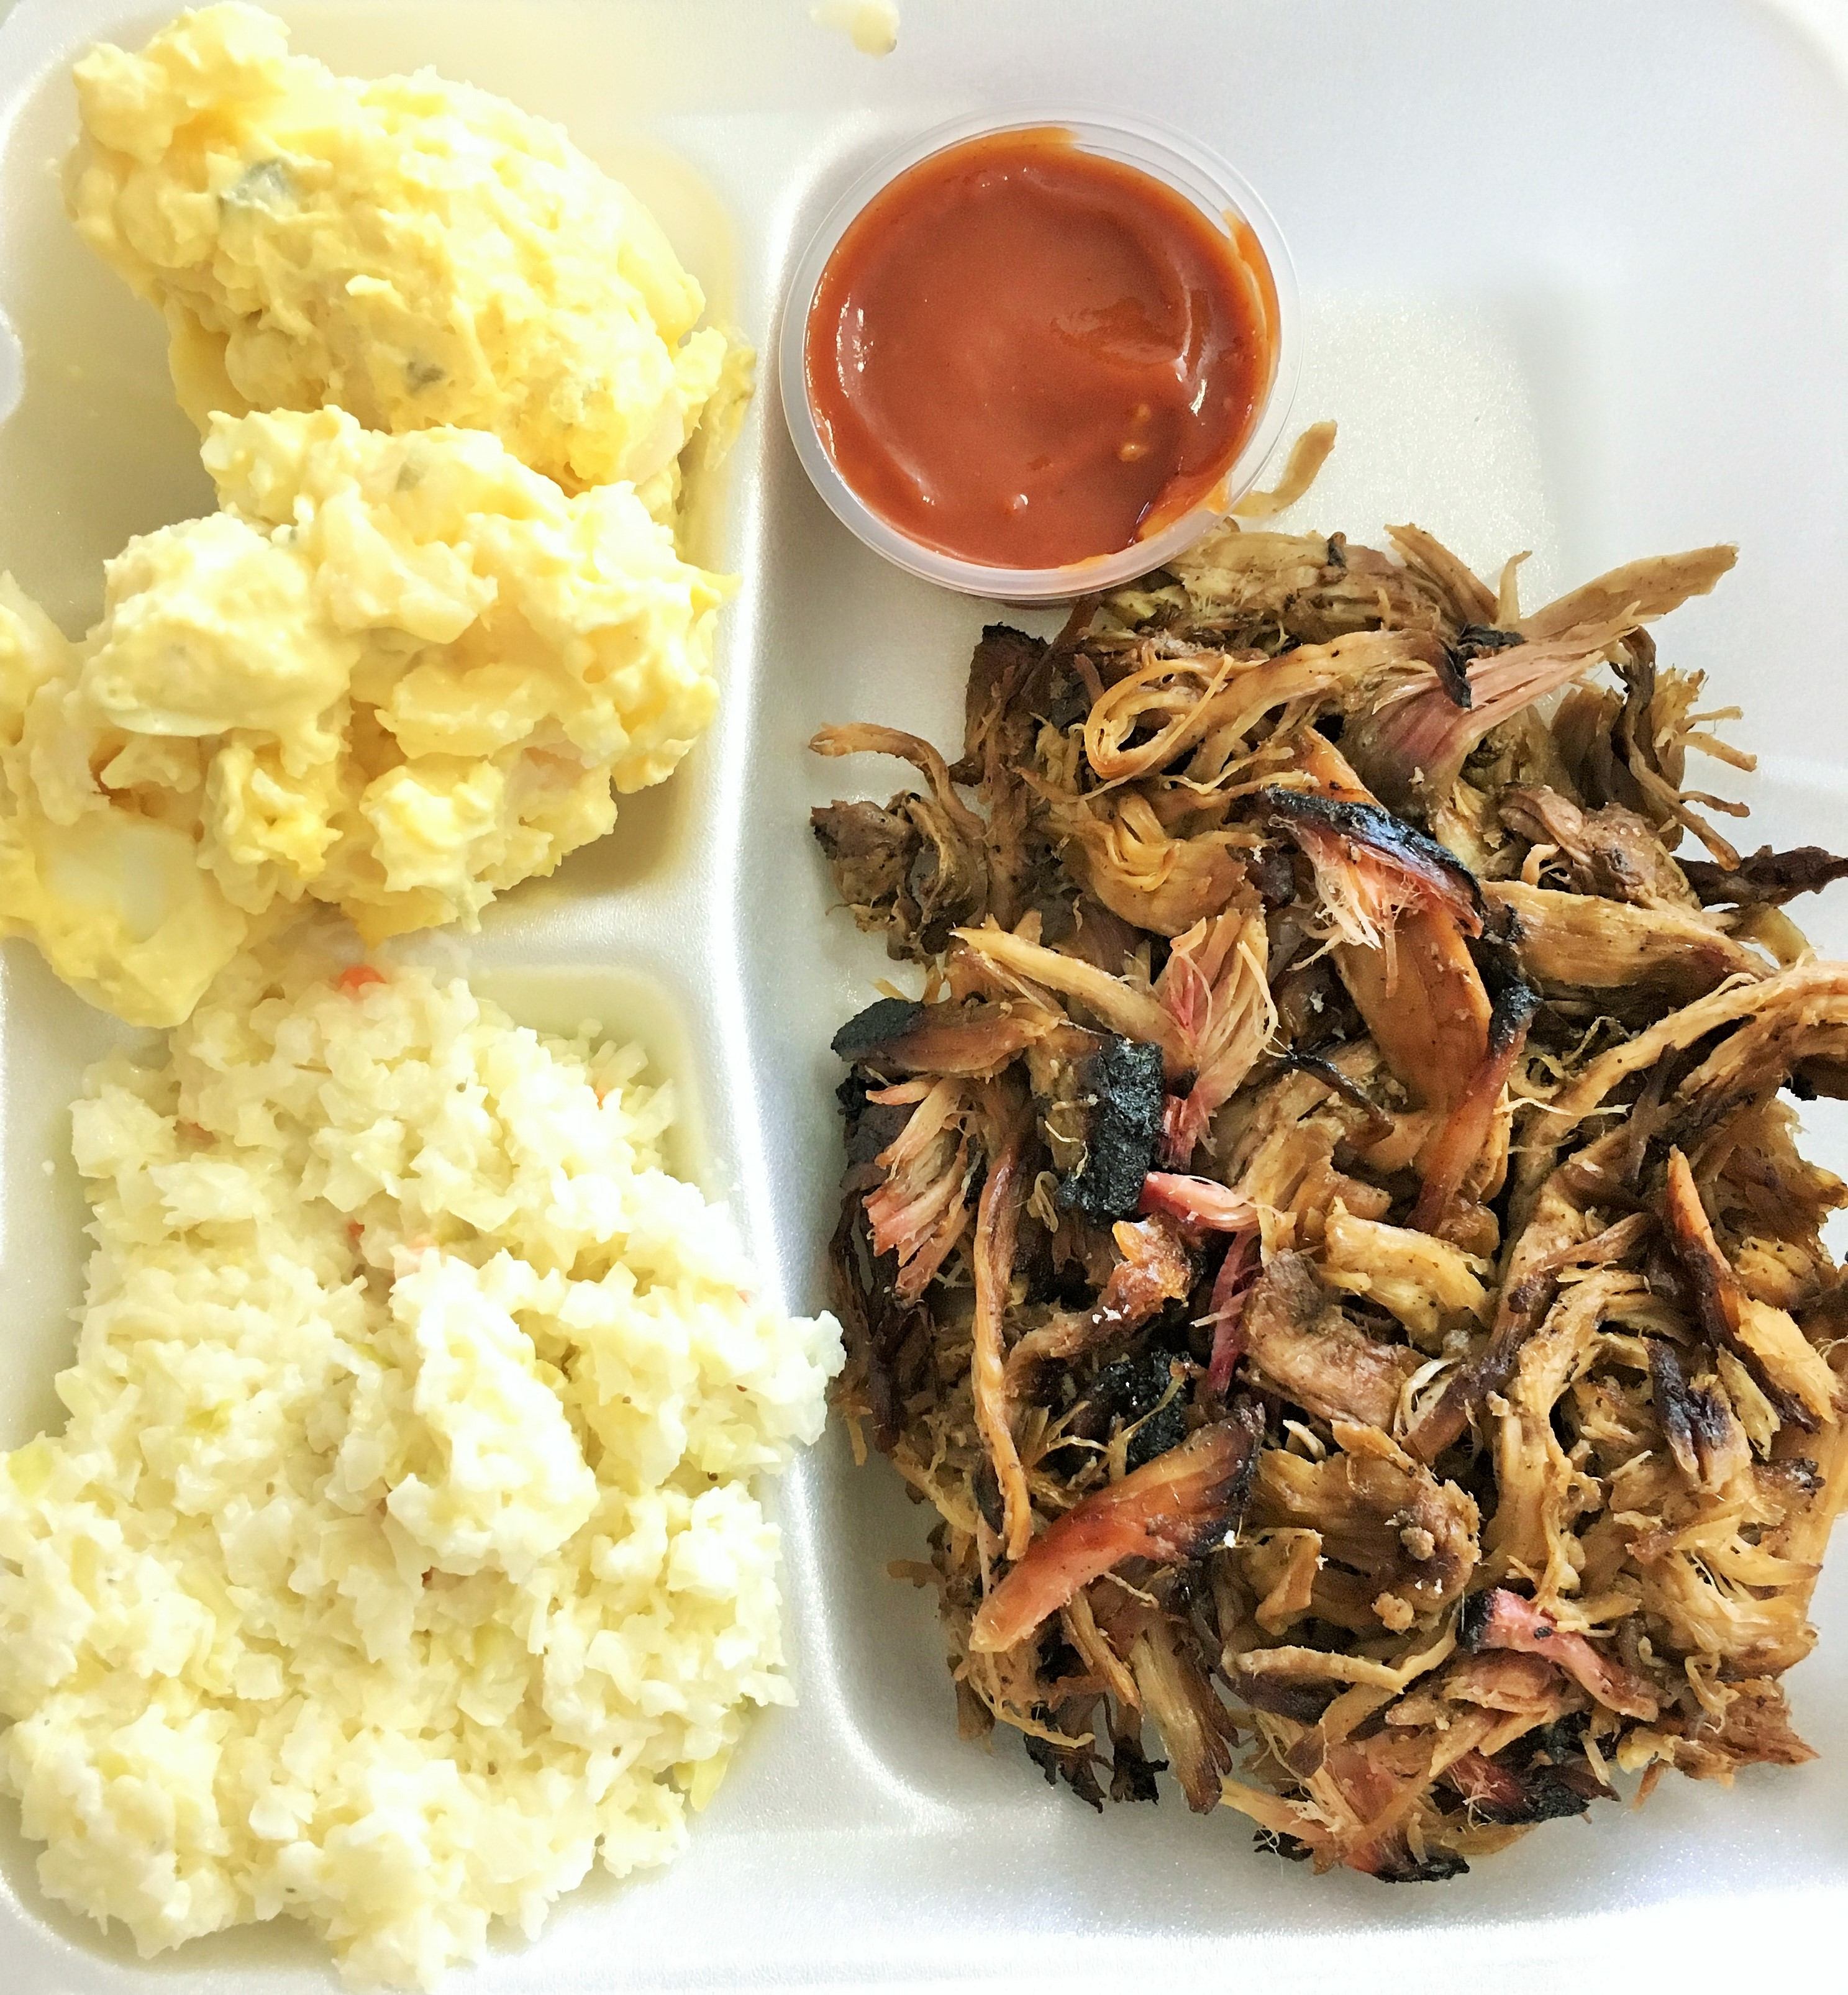 Pulled pork plate with mustard potato salad and coleslaw